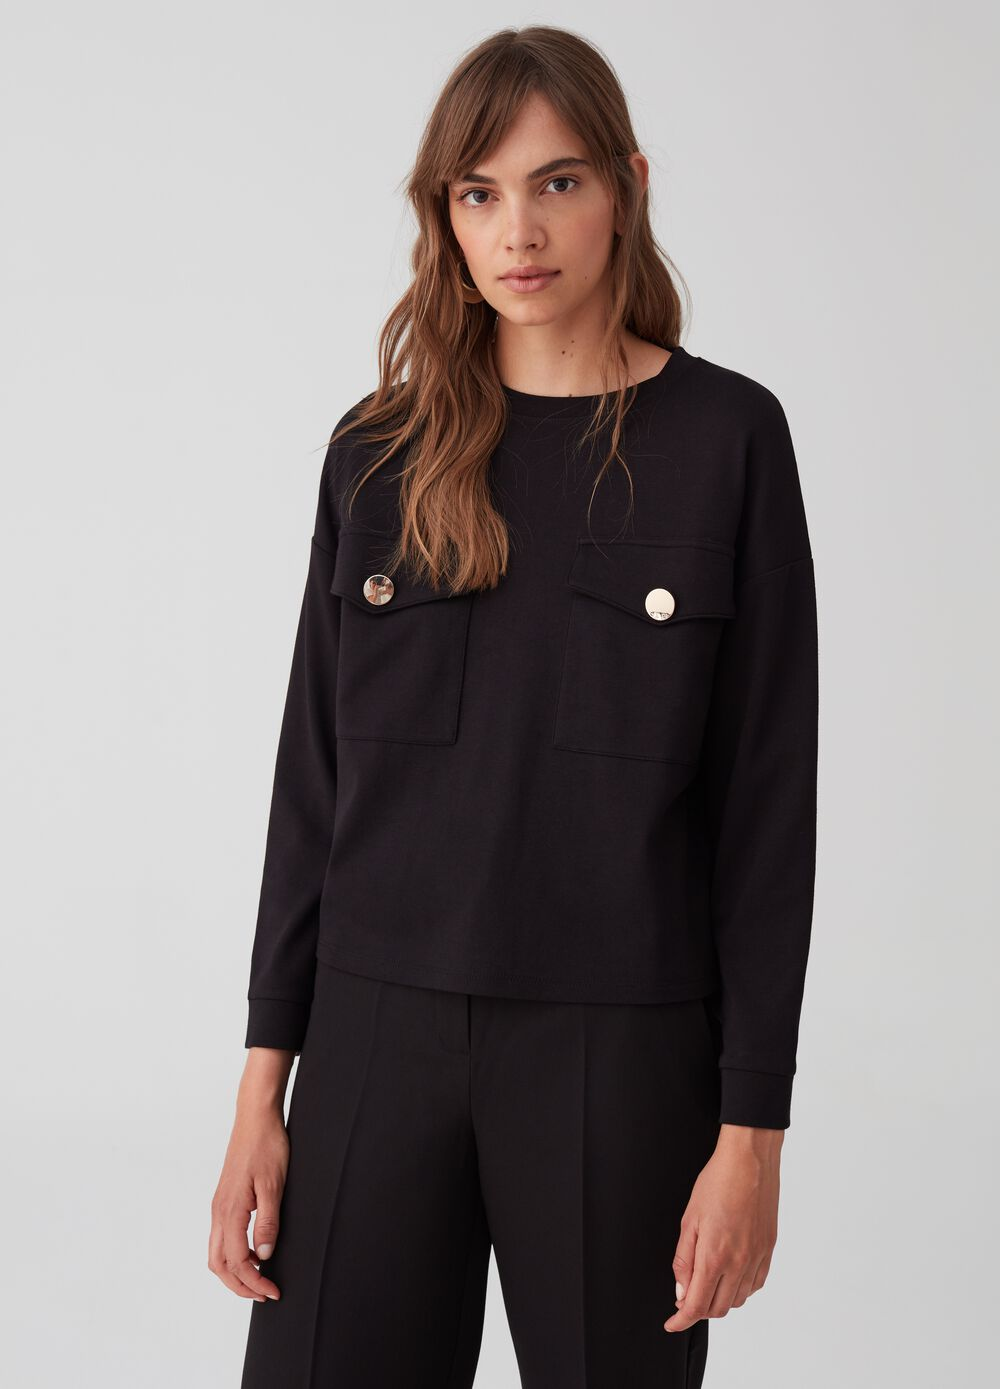 T-shirt with long sleeves and pockets